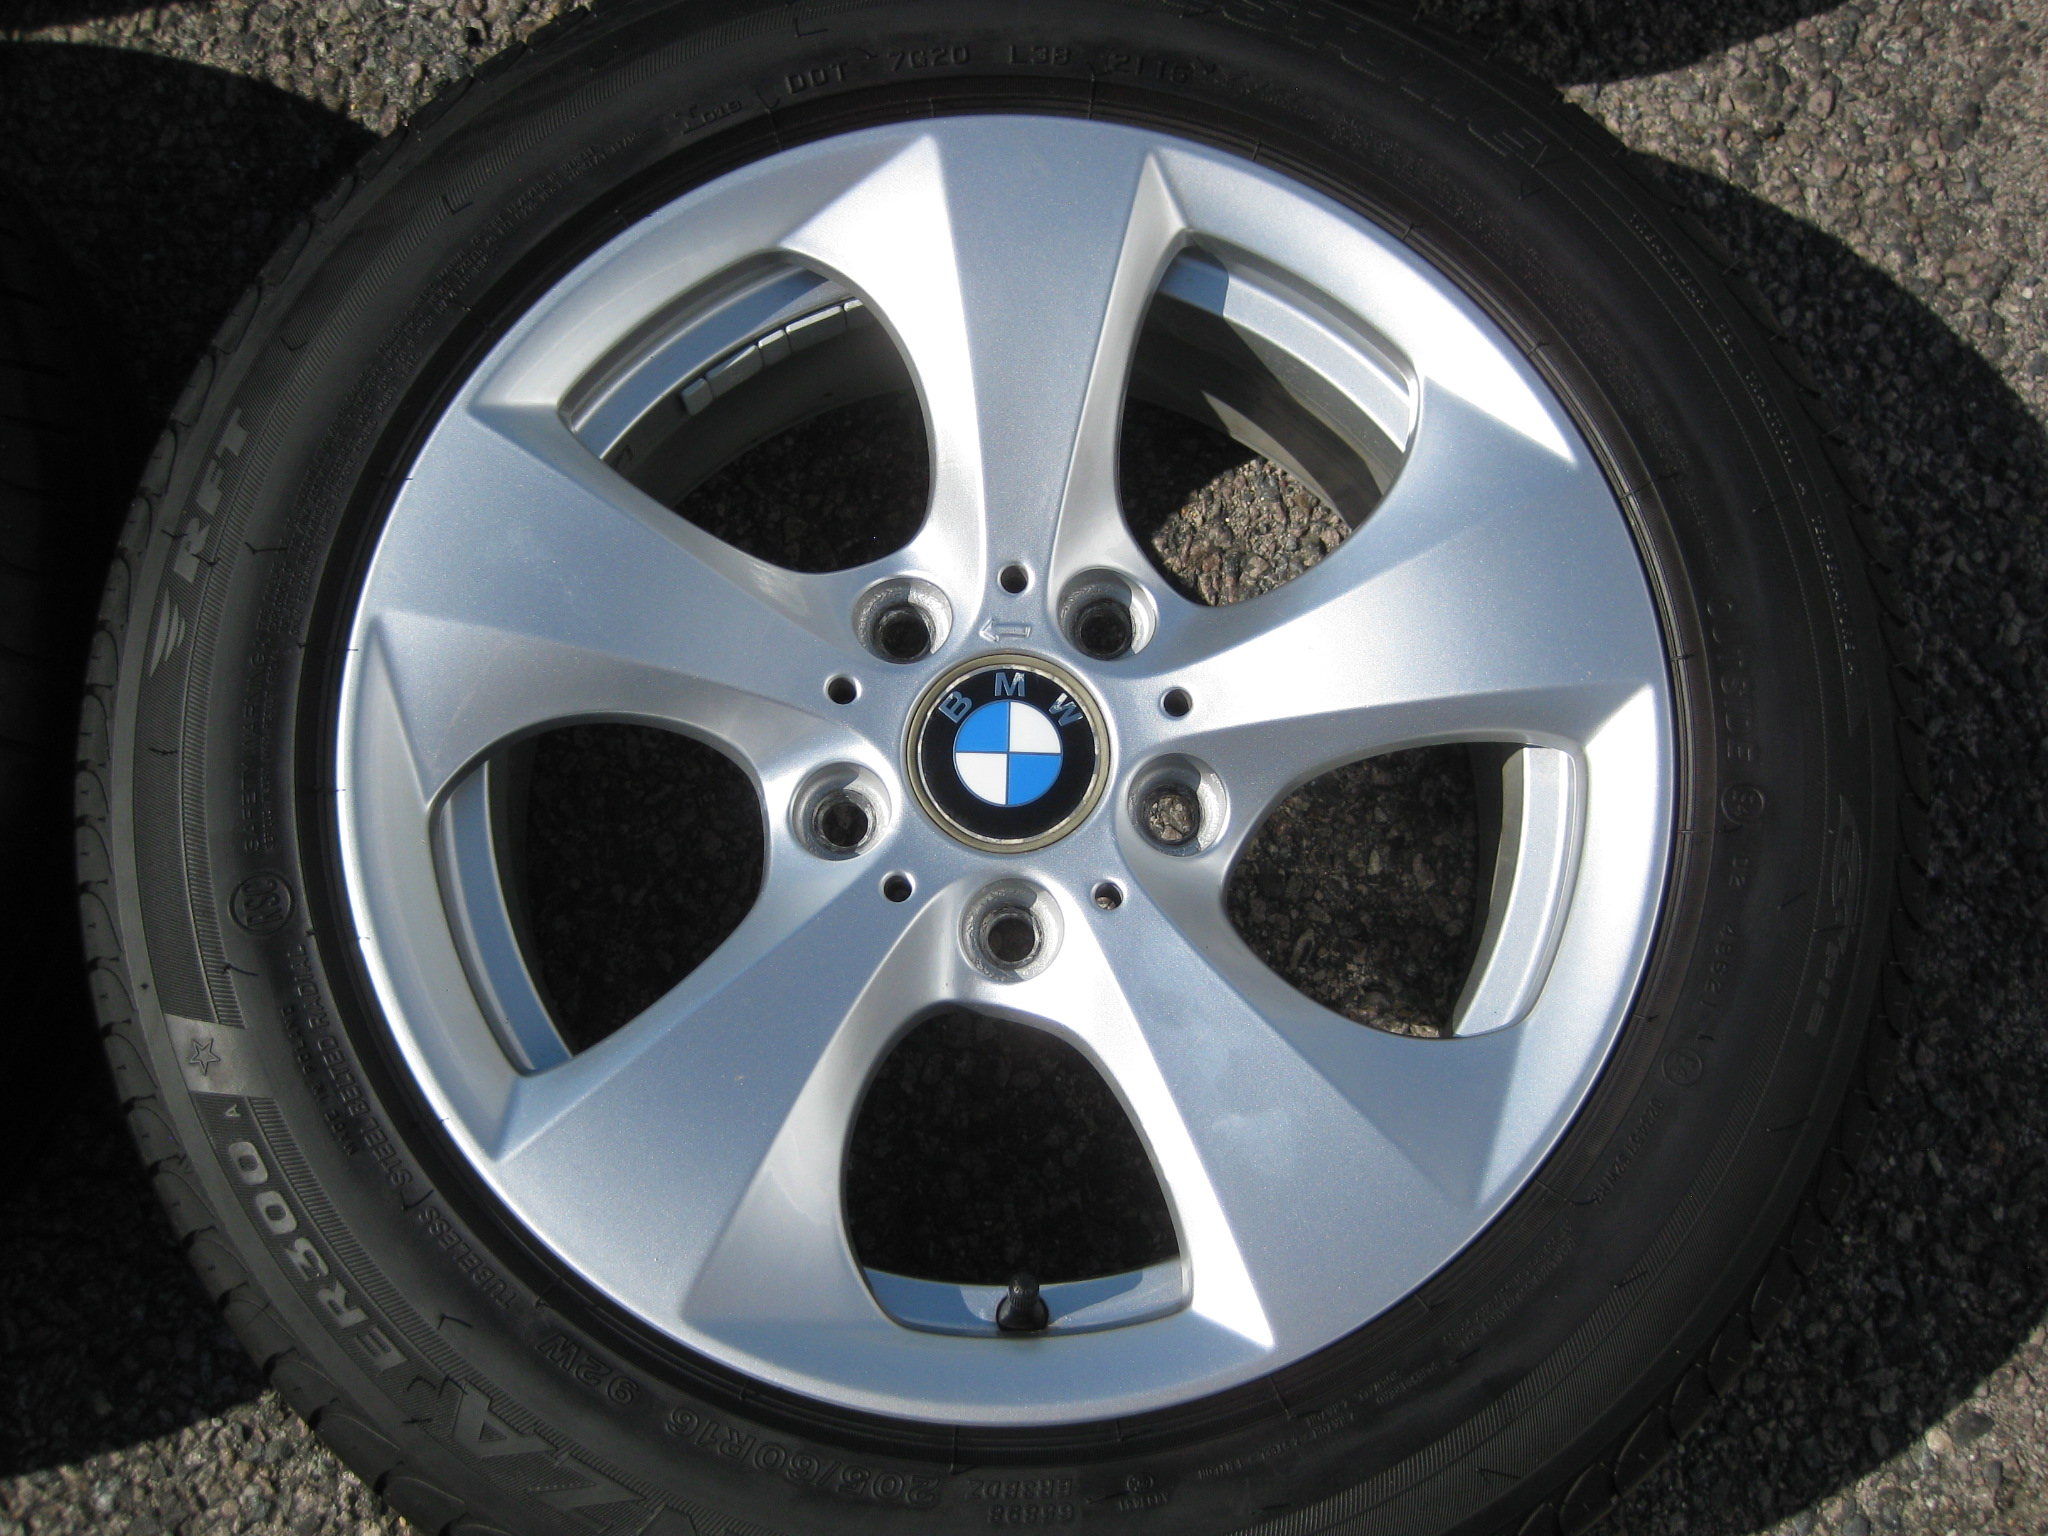 "USED 16"" GENUINE STYLE 306 TURBINE DIRECTIONAL ALLOY WHEELS, VERY GOOD CONDITION INC GOOD BRIDGESTONE RUNFLAT TYRES"